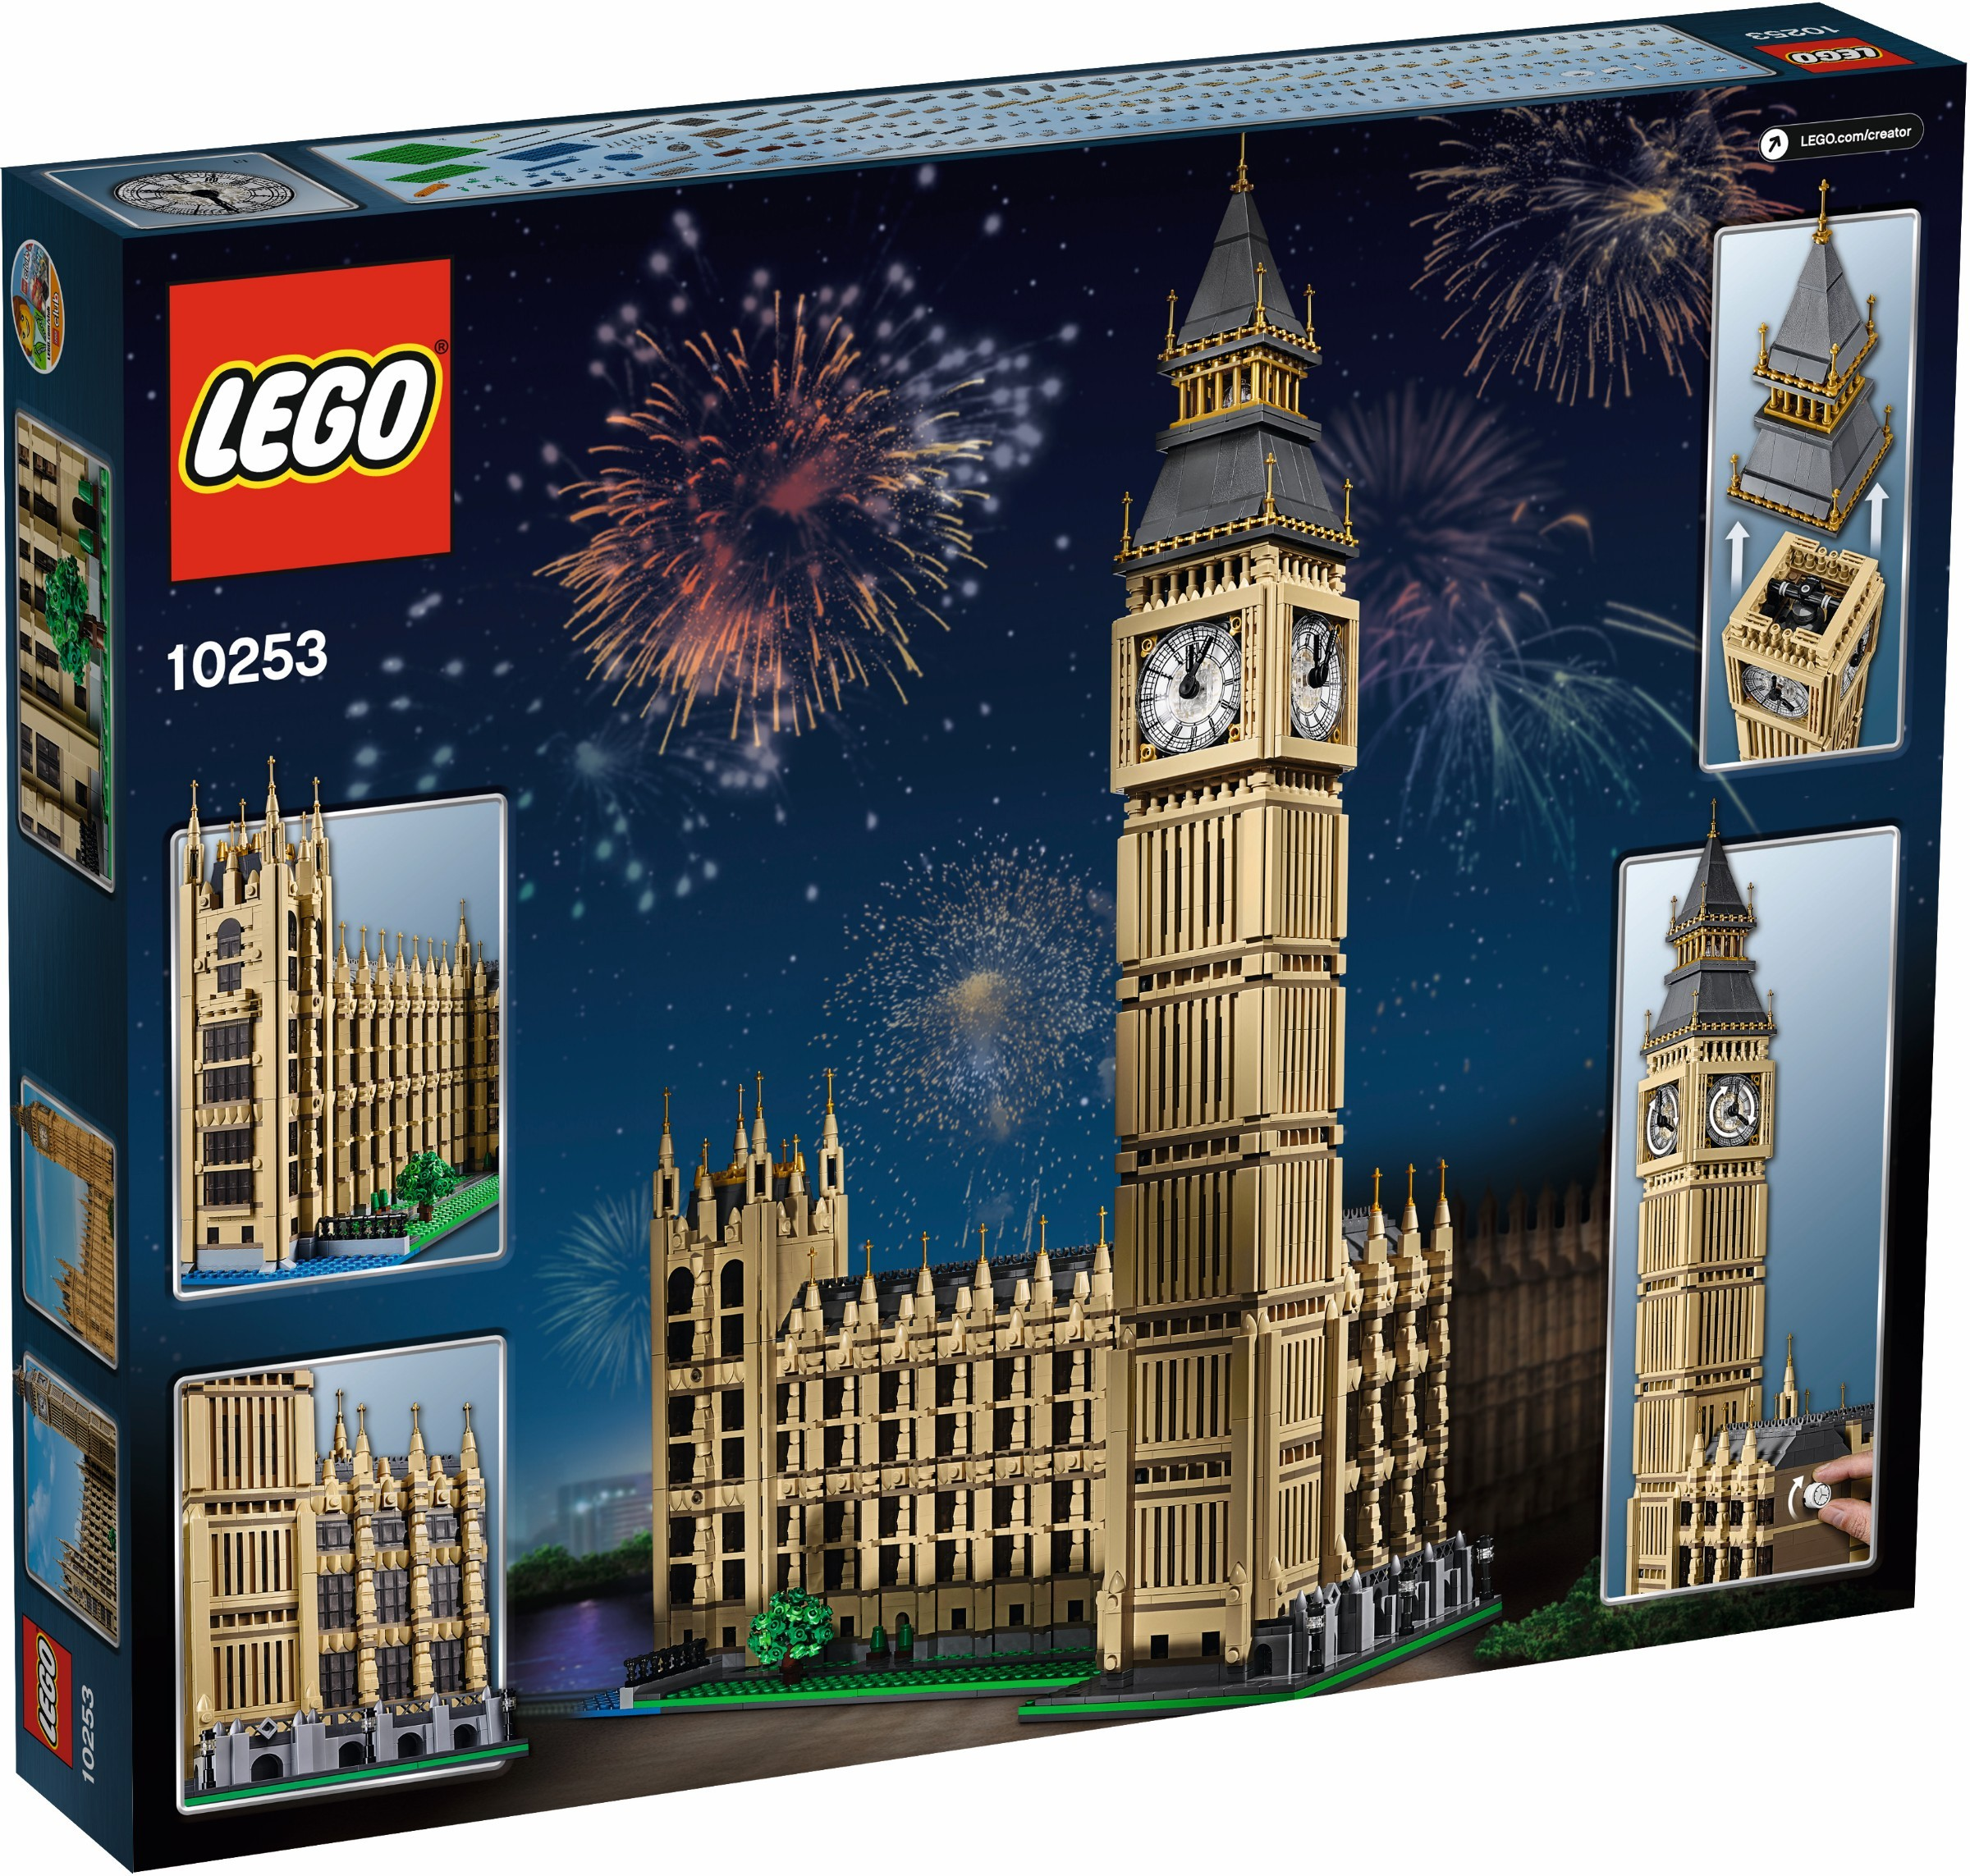 http://images.brickset.com/sets/AdditionalImages/10253-1/10253_Box5_in.jpg